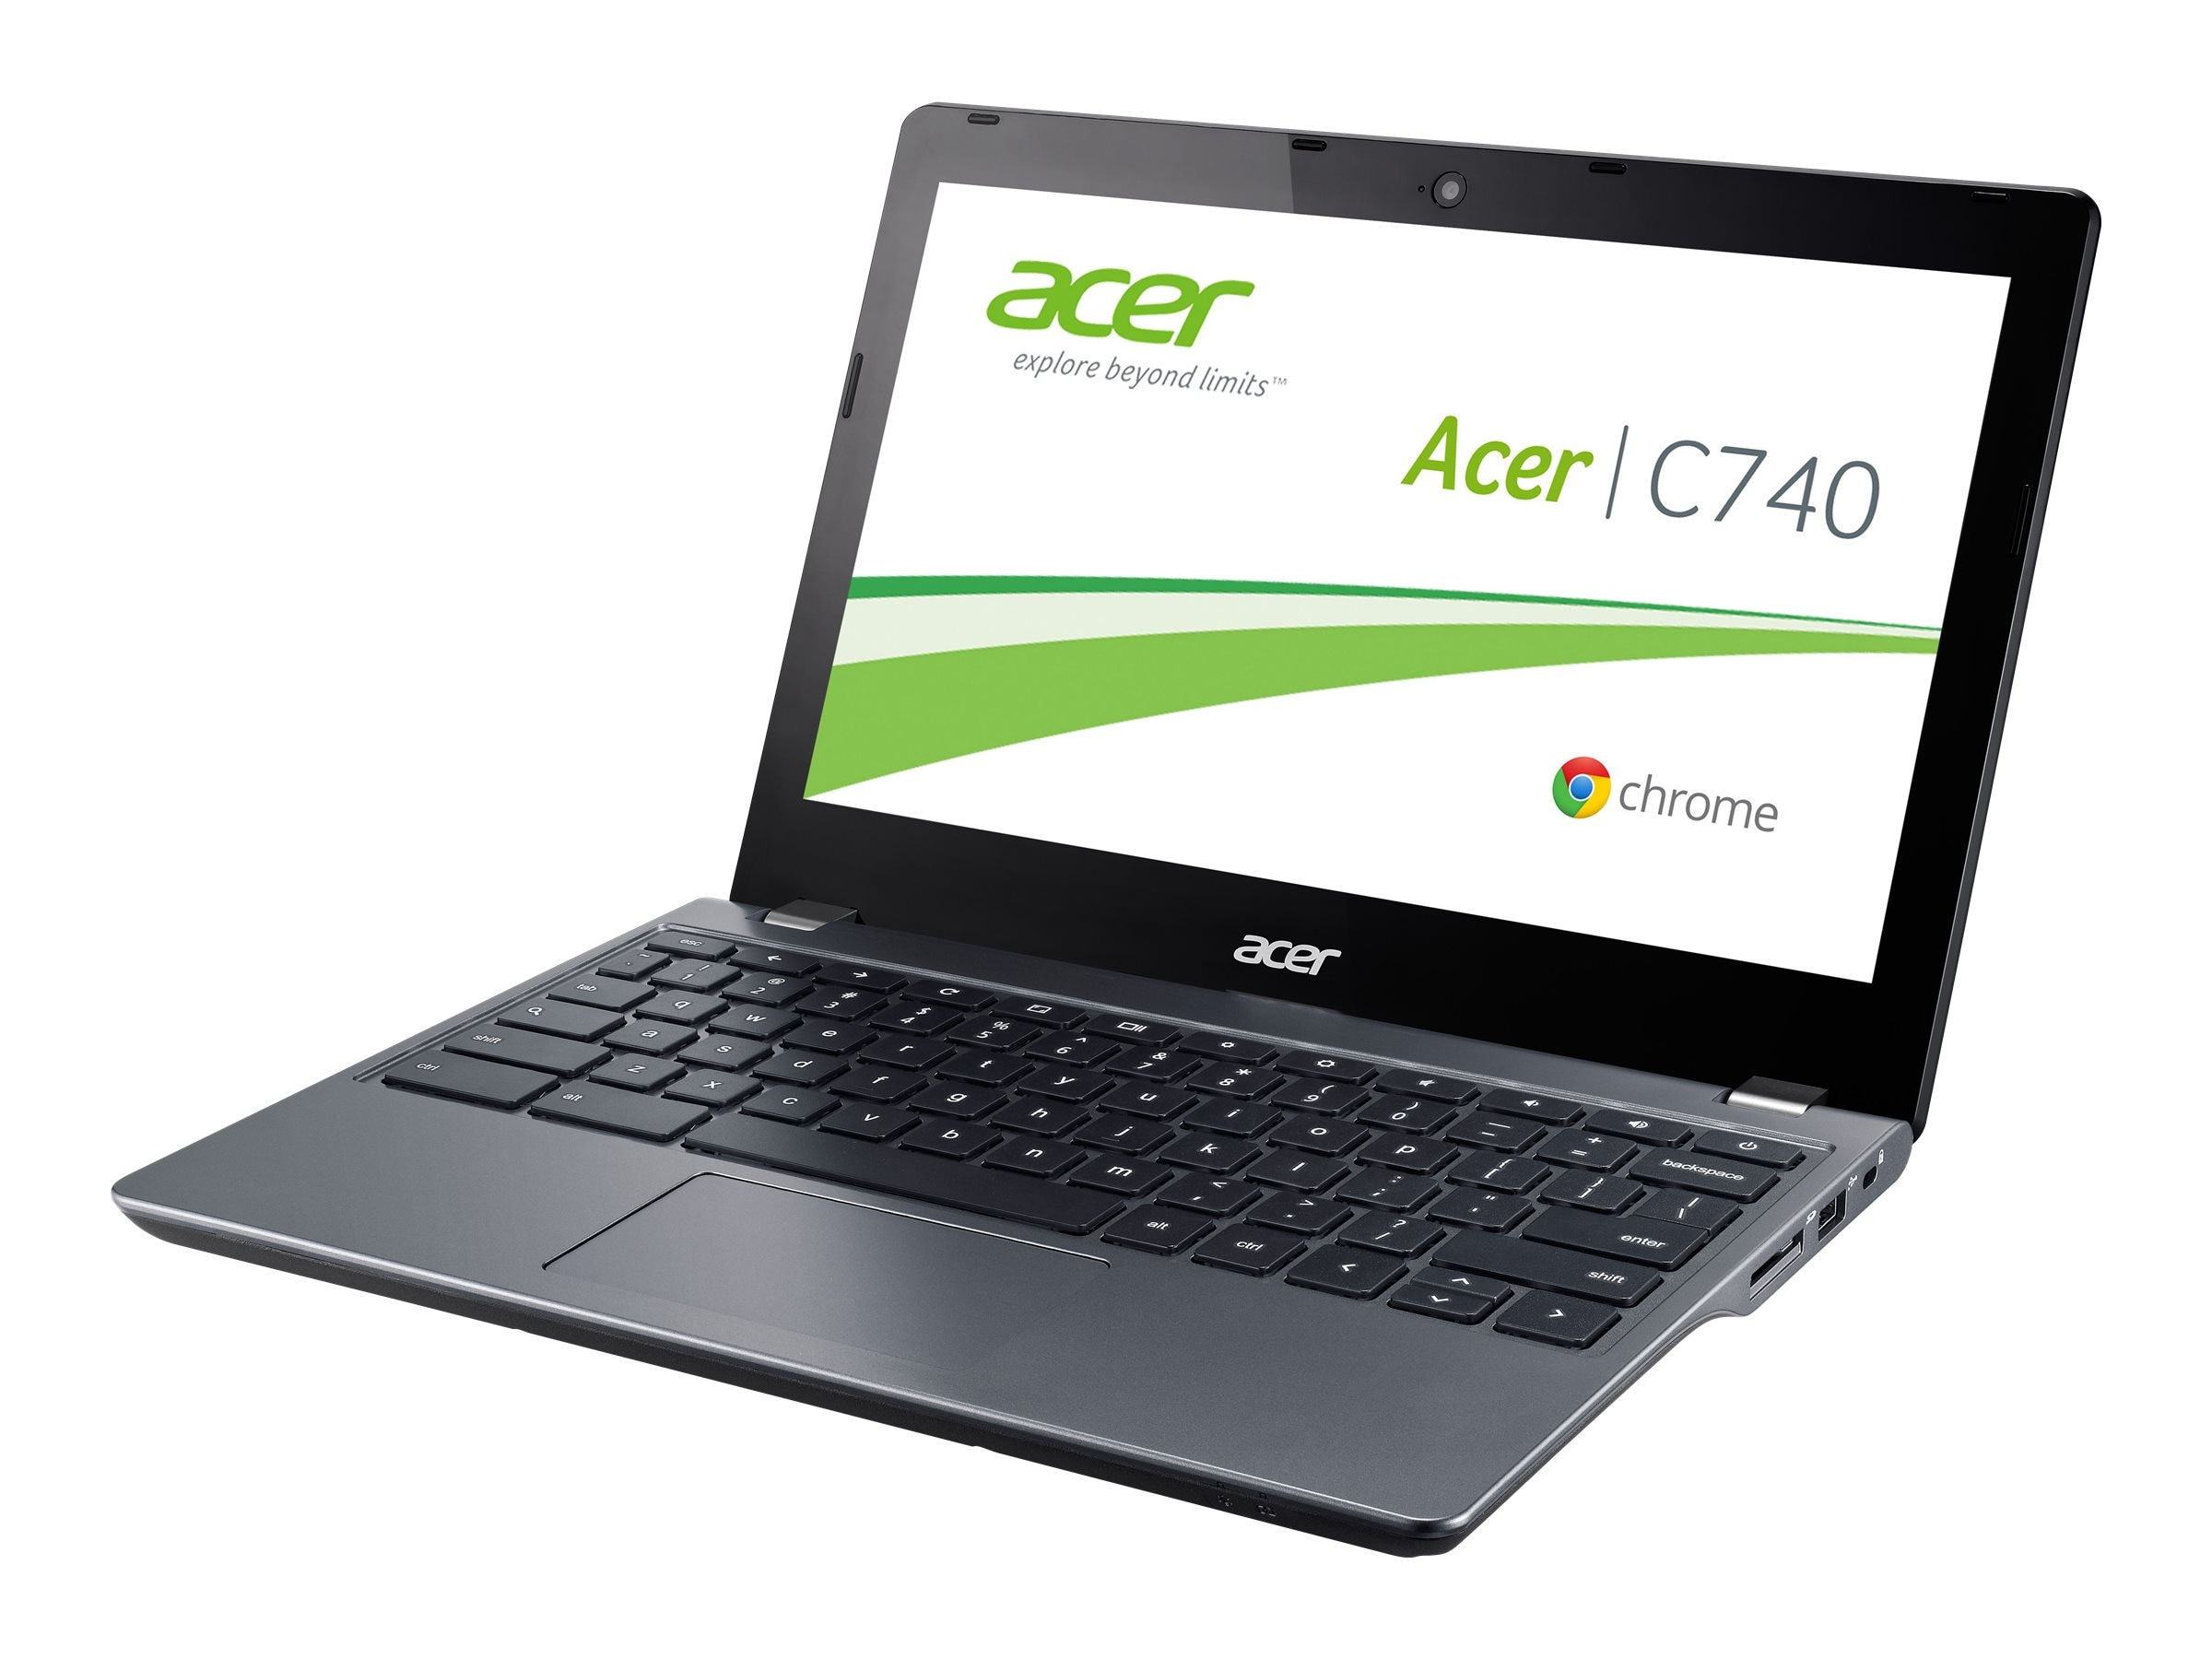 Acer Chromebook C740-C3P1 Celeron 3205U 1.5GHz 2GB 16GB SSD ac BT WC 11.6 HD ChromeOS, NX.EF2AA.001, 18403844, Notebooks